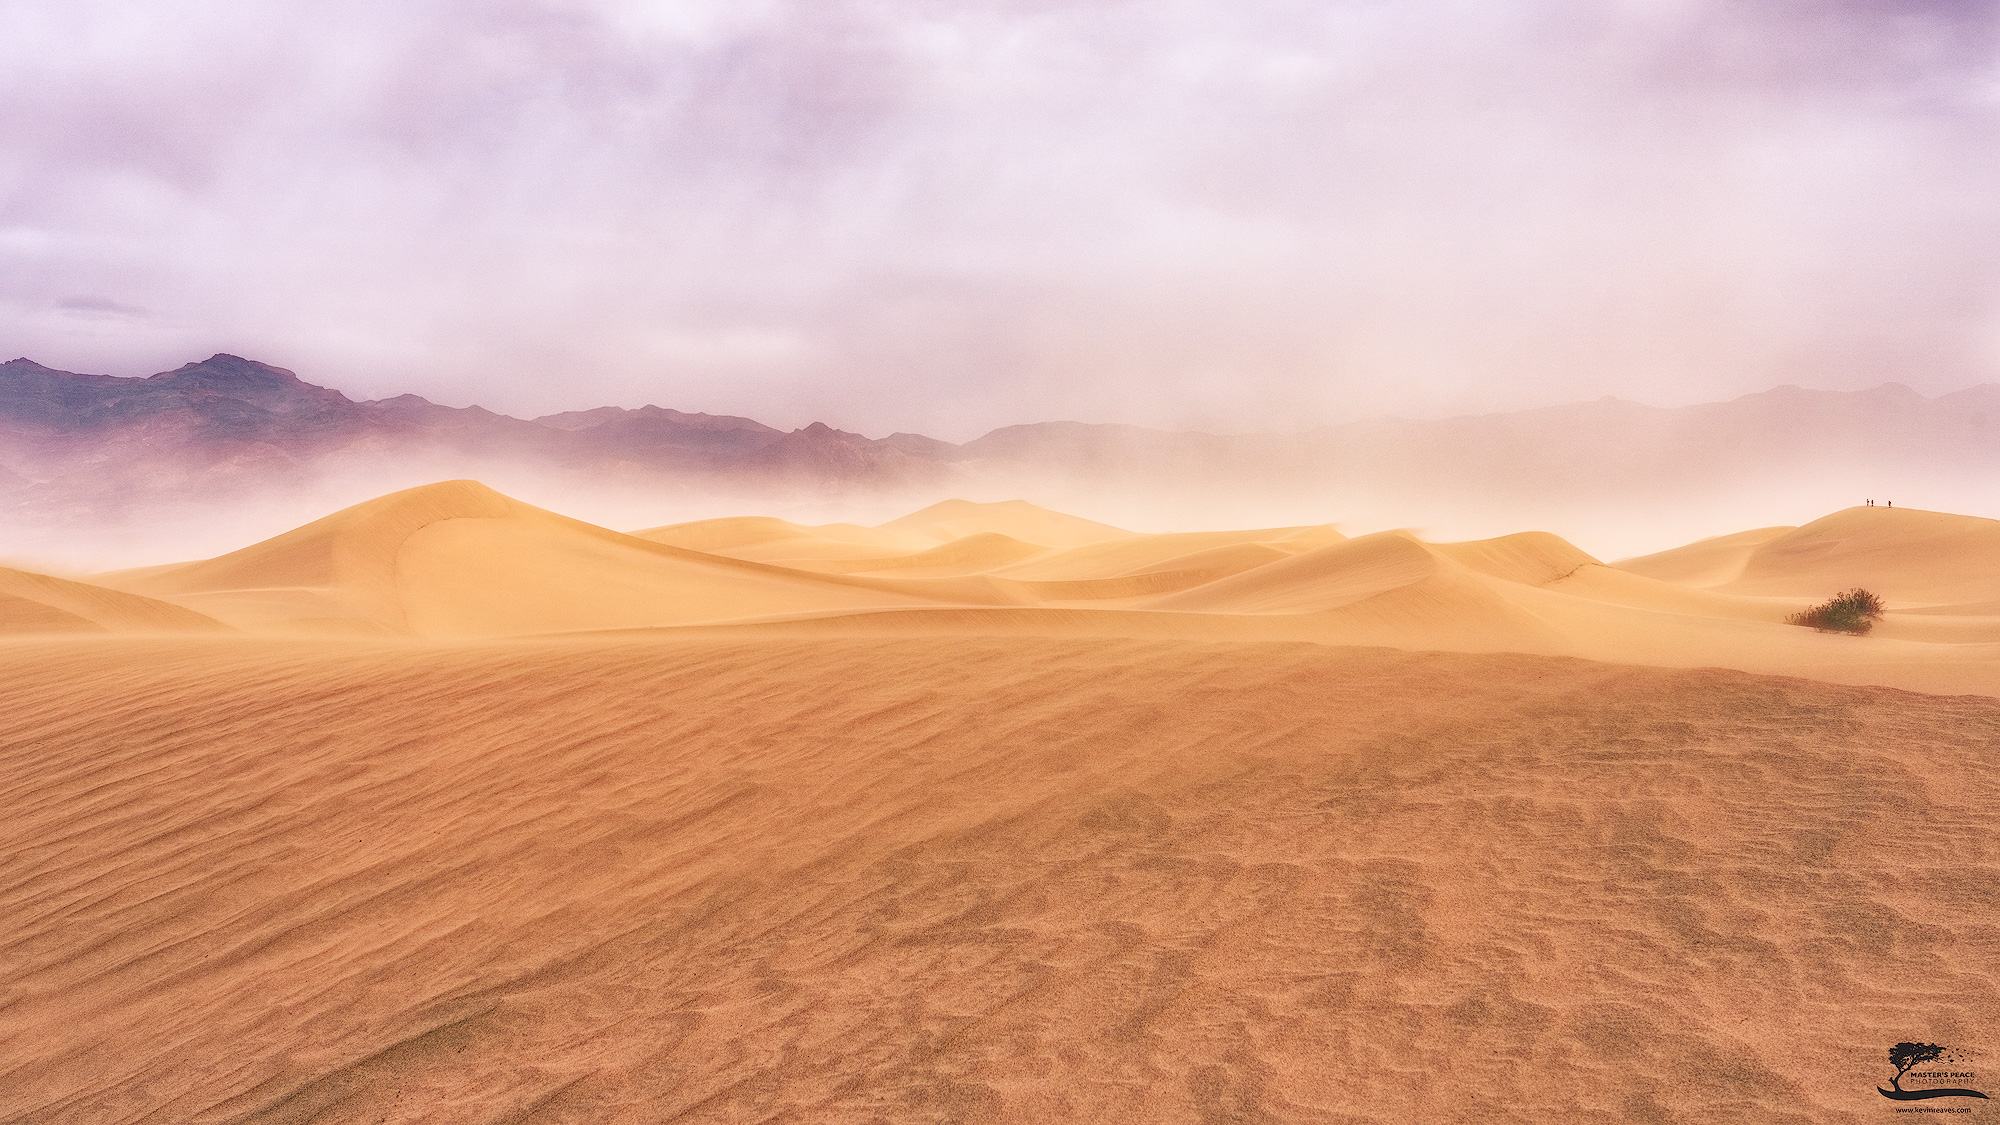 This was shot during our first afternoon when the sandstorm was quite possibly at its worst. We had to hang back from being in...